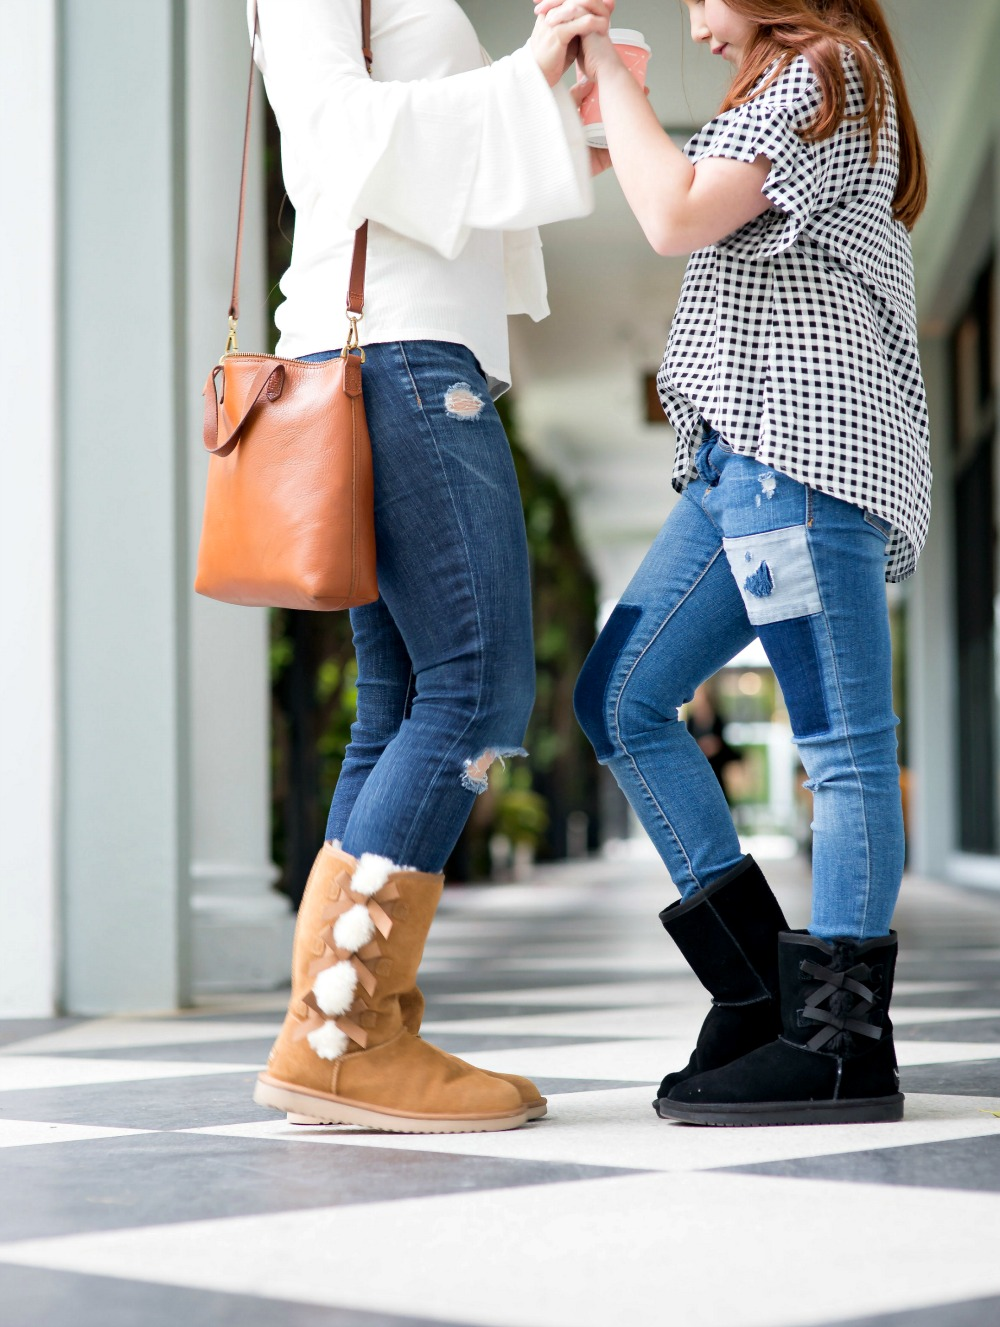 Koolaburra by UGG boots for moms and daughters - winter boots edition by popular Florida style blogger The Modern Savvy